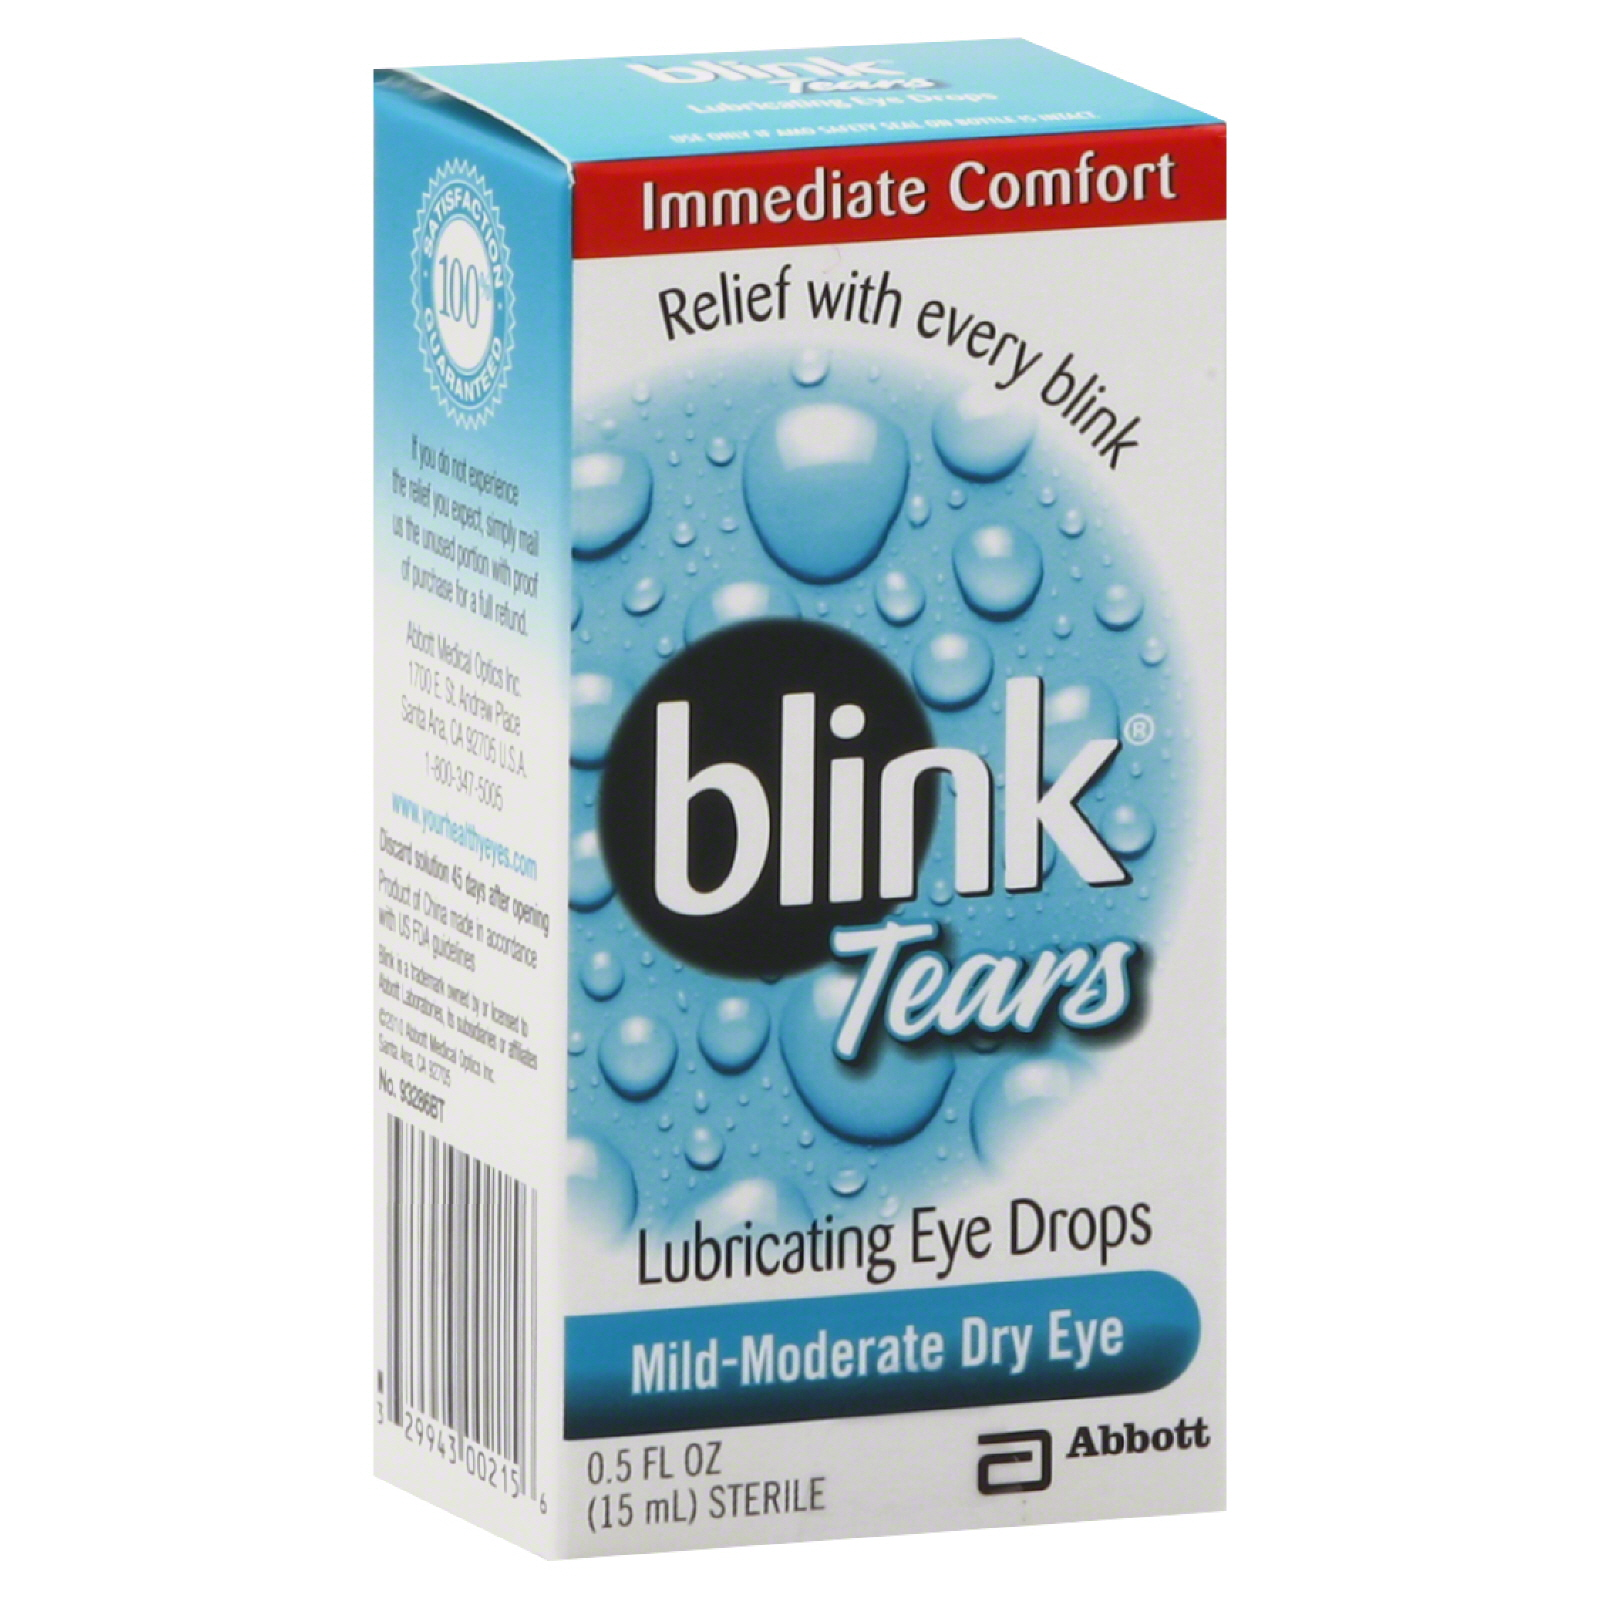 Blink Tears Dry Eye Drop 15ml By J&J